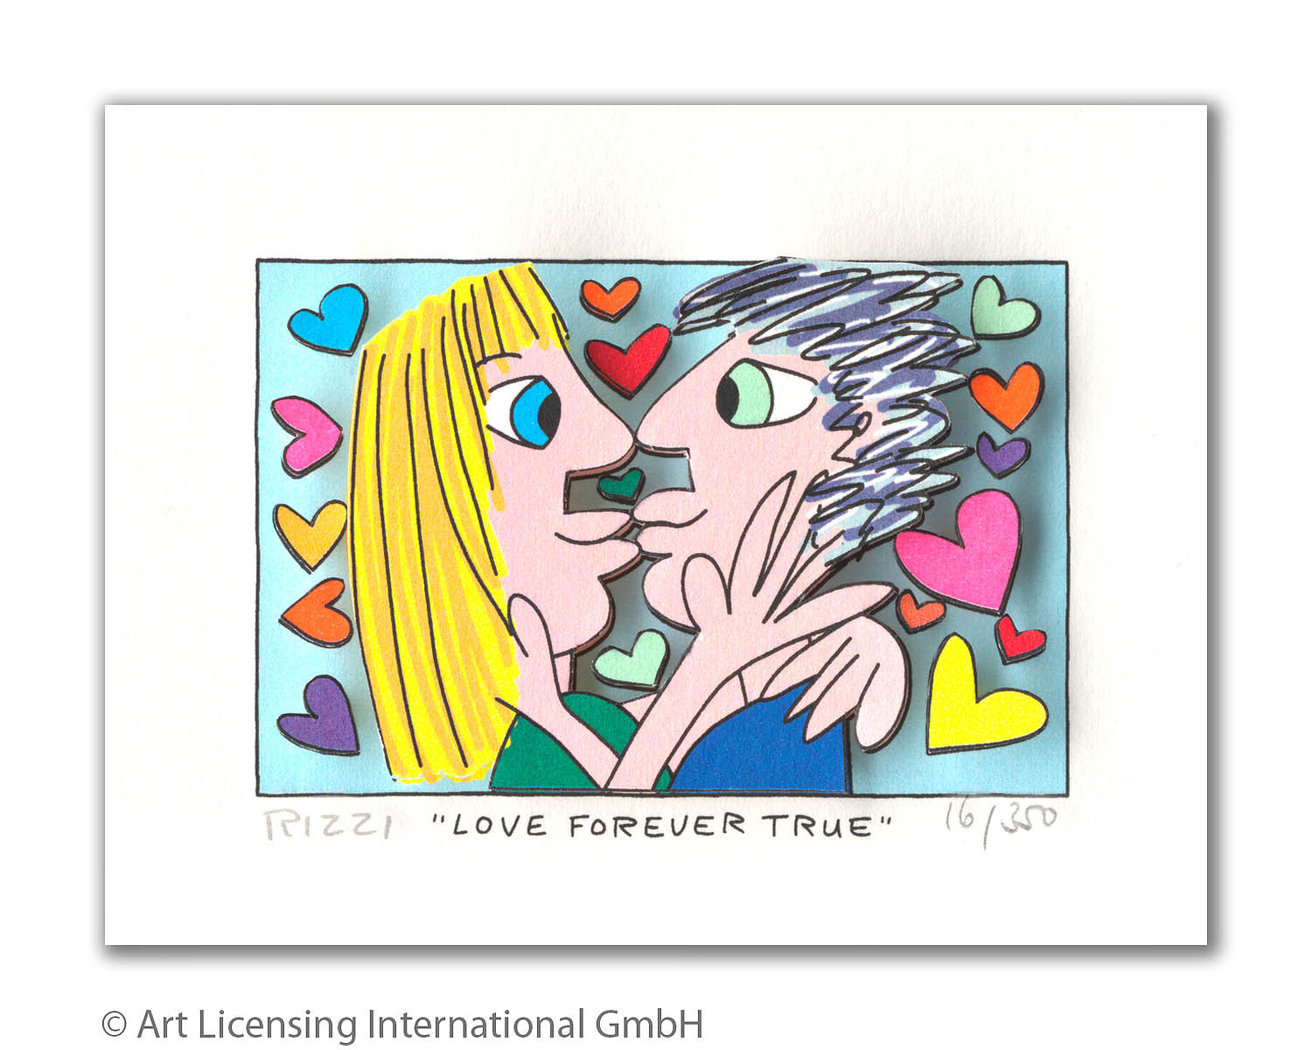 James Rizzi - LOVE FOREVER TRUE